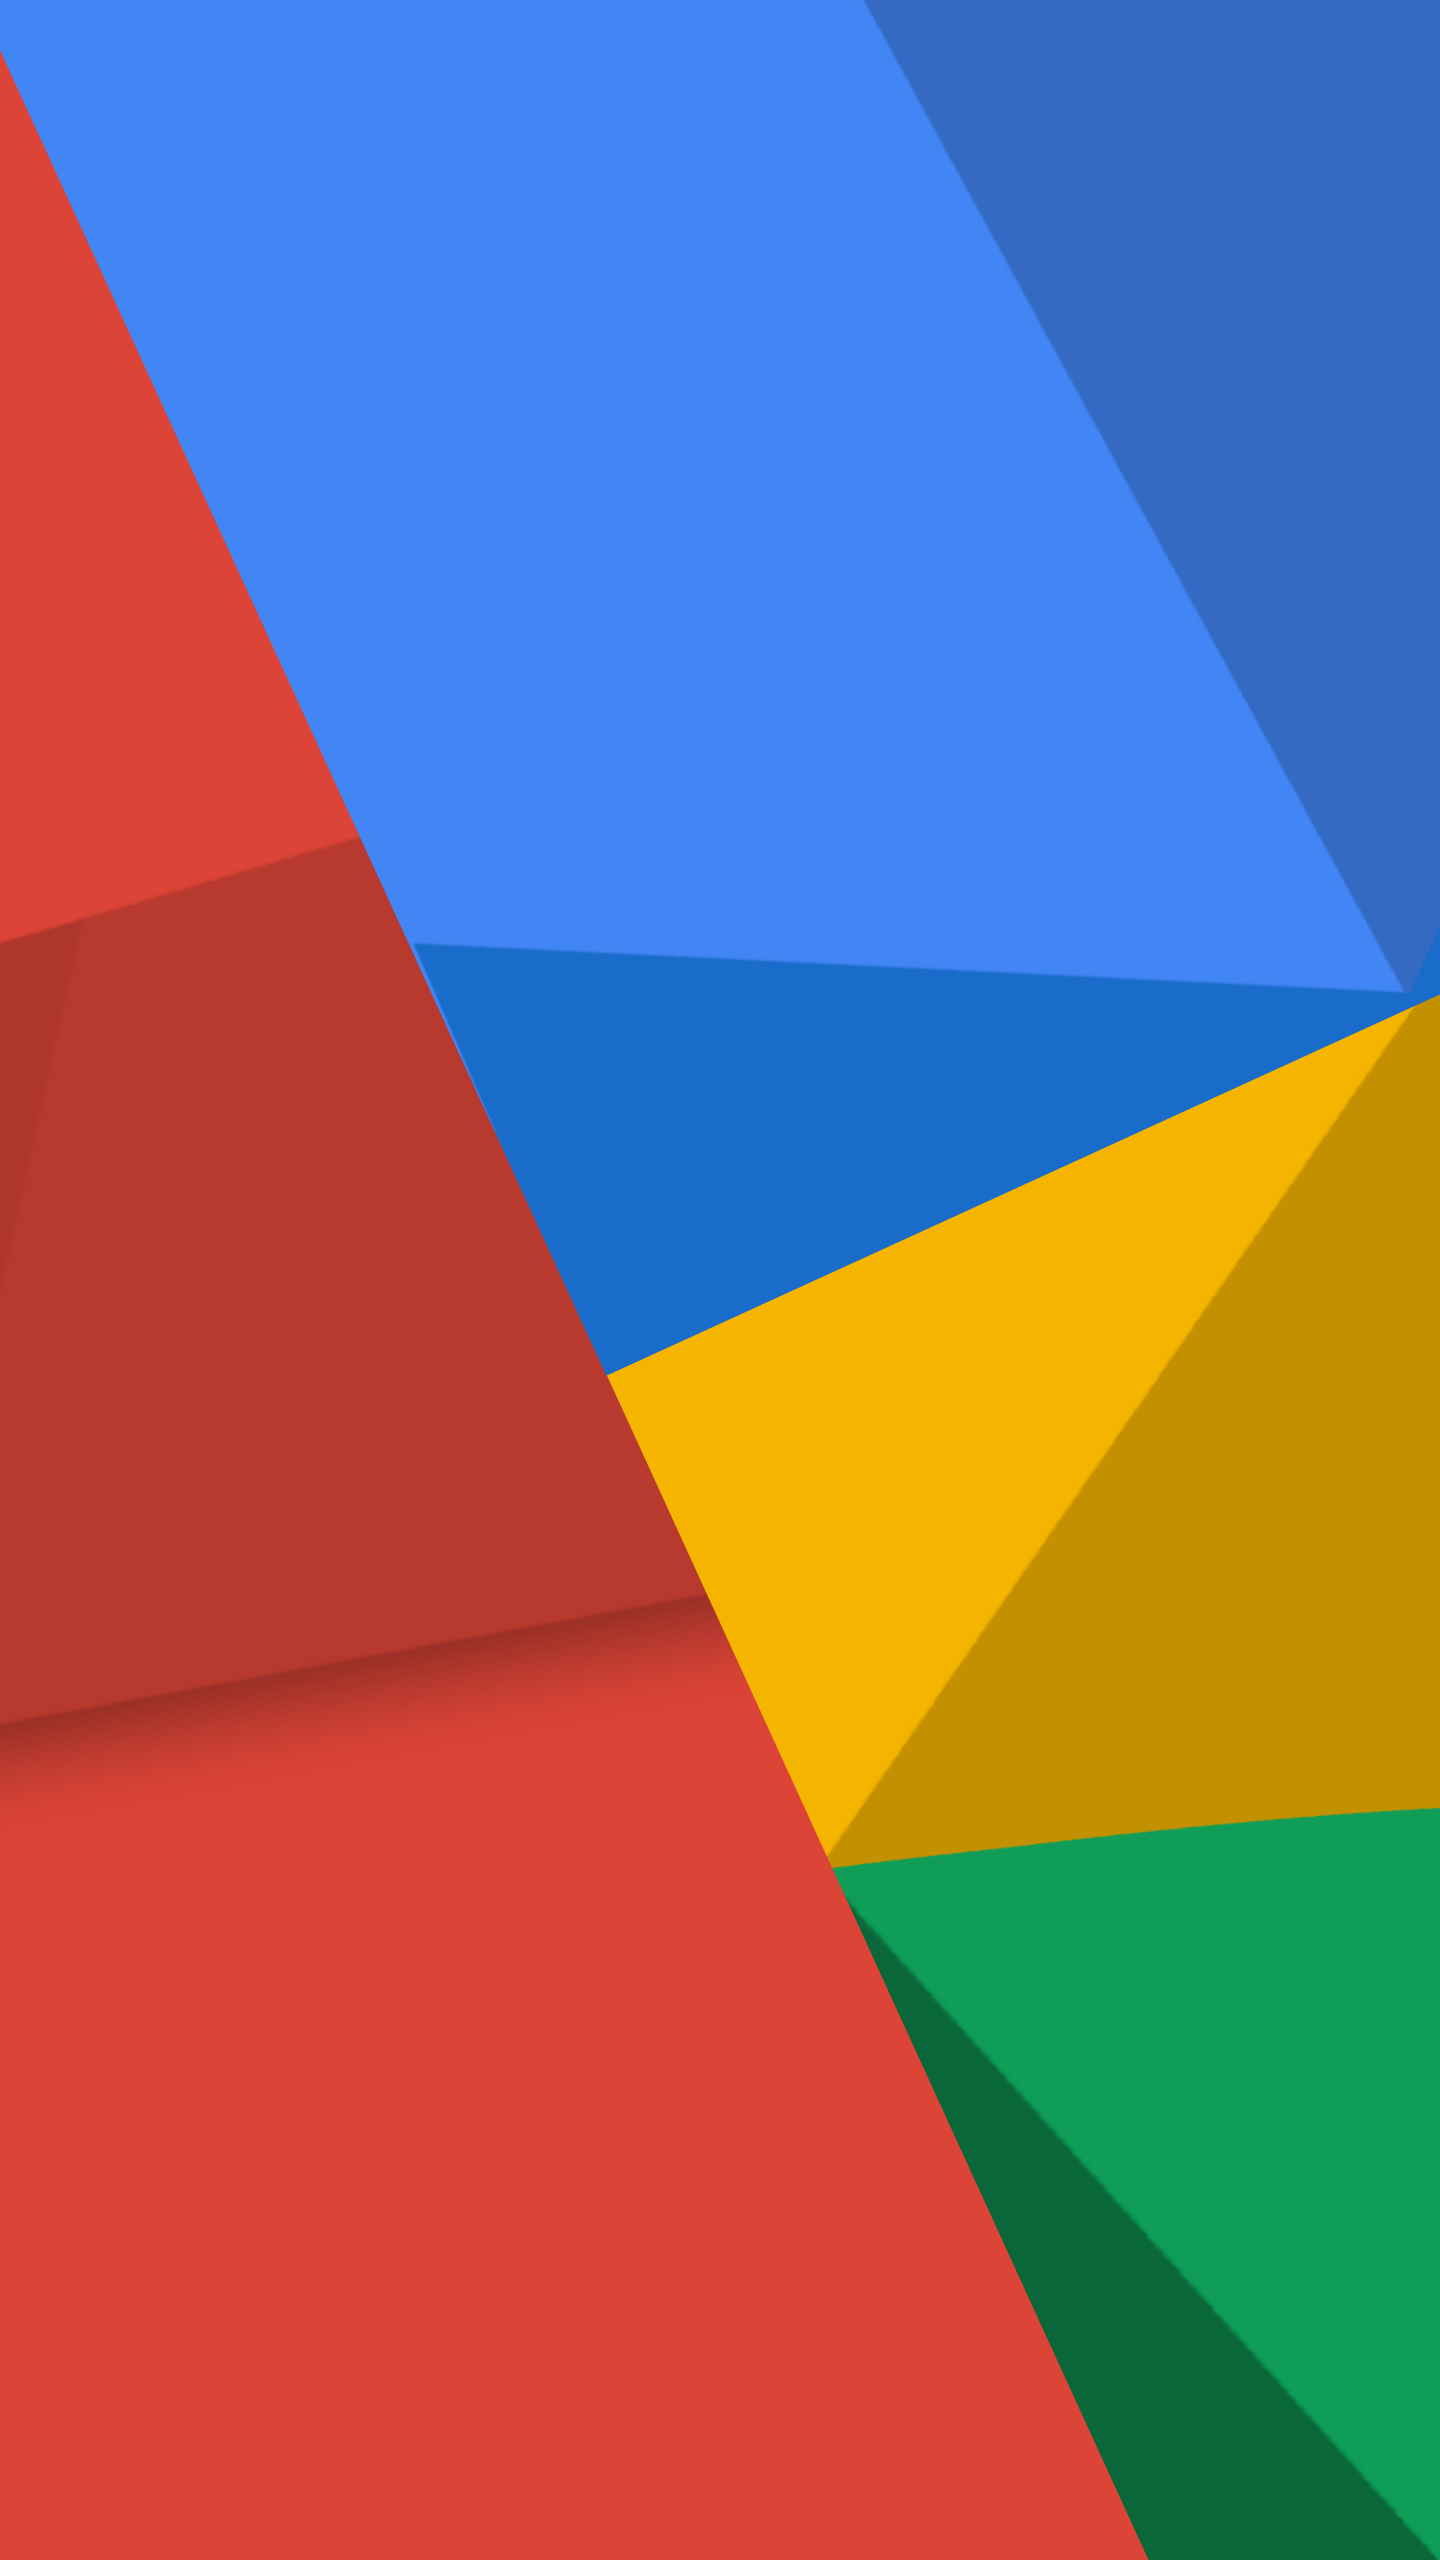 MKBHD Wallpaper Google Drive 1440x2560